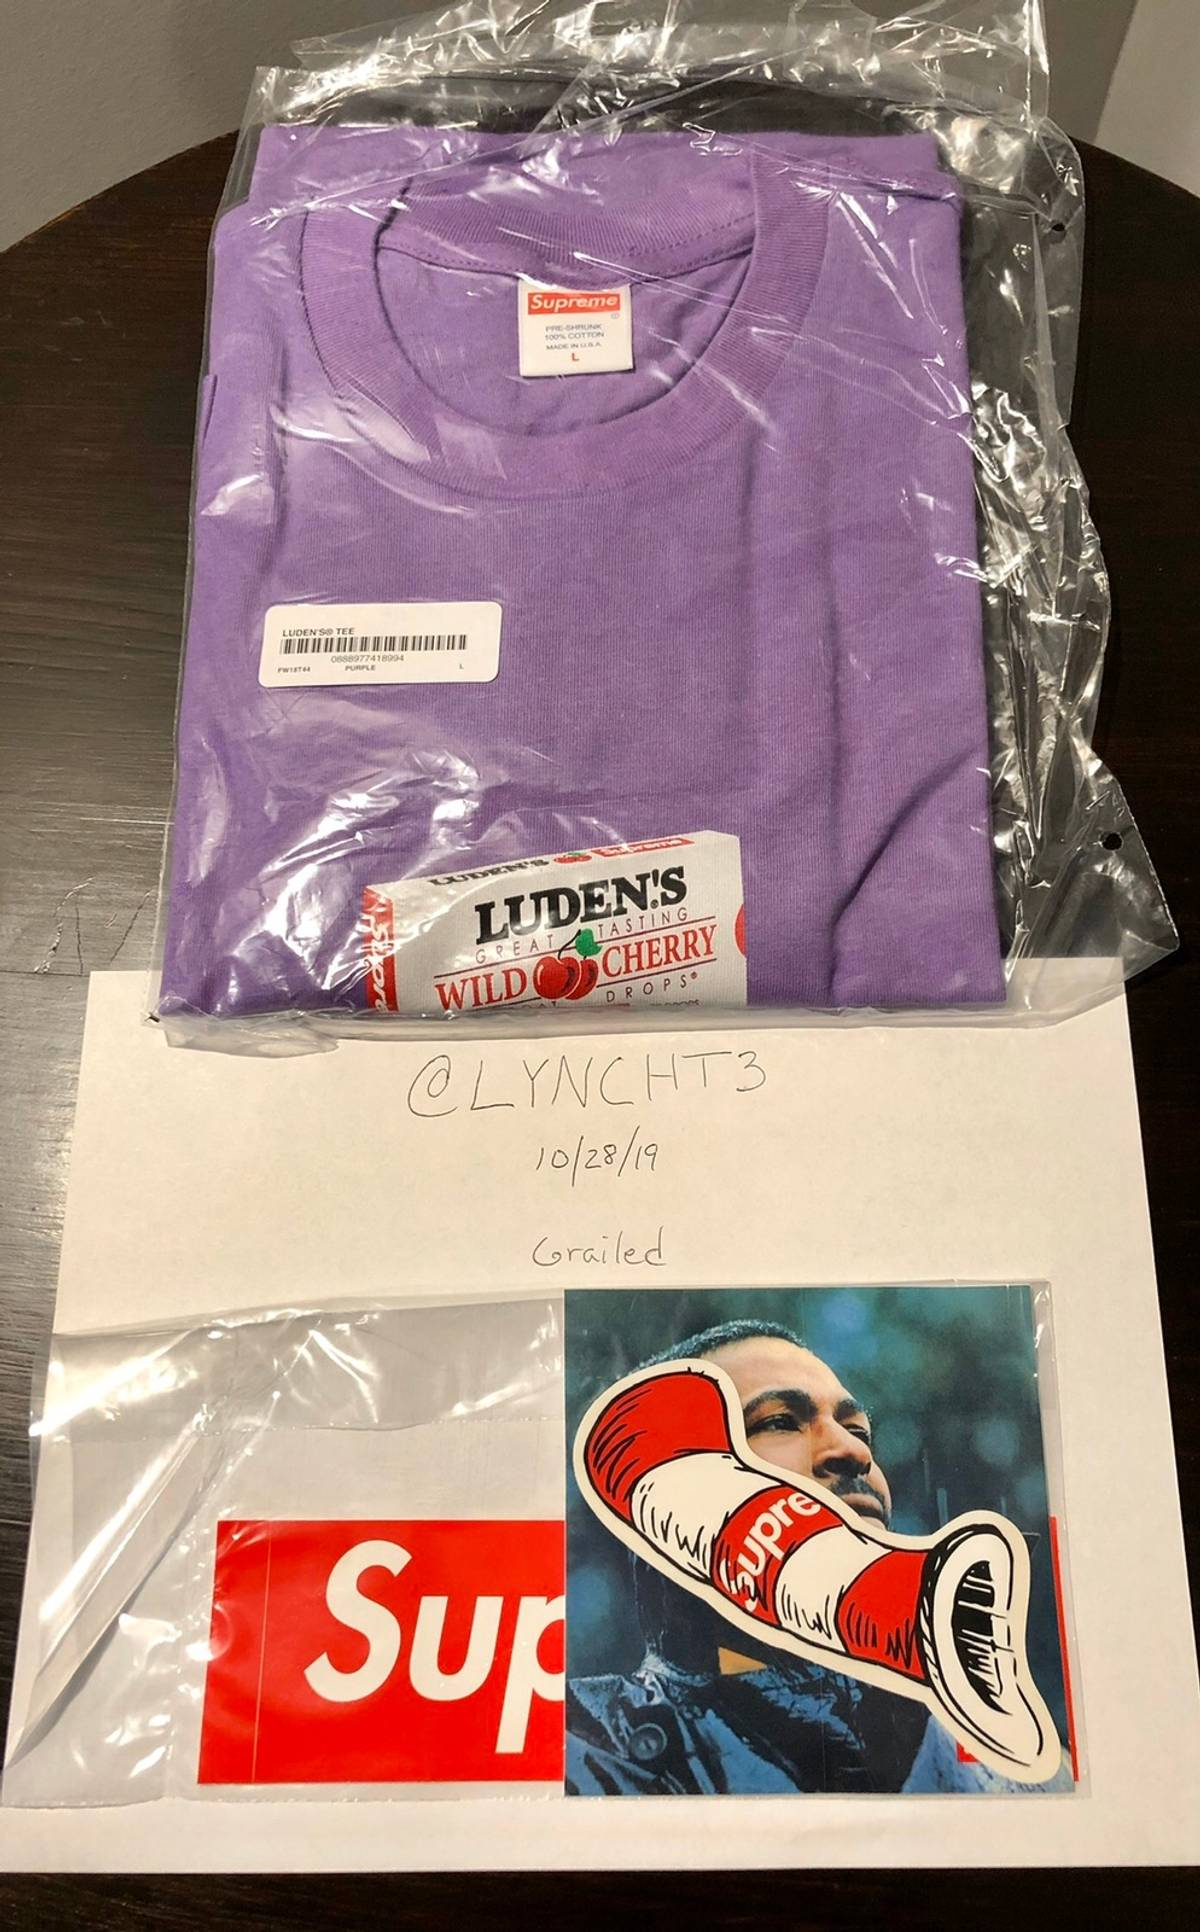 1 Brand New Supreme Luden/'s White Medium Tee Shirt + Luden/'s Cough Drop Pack